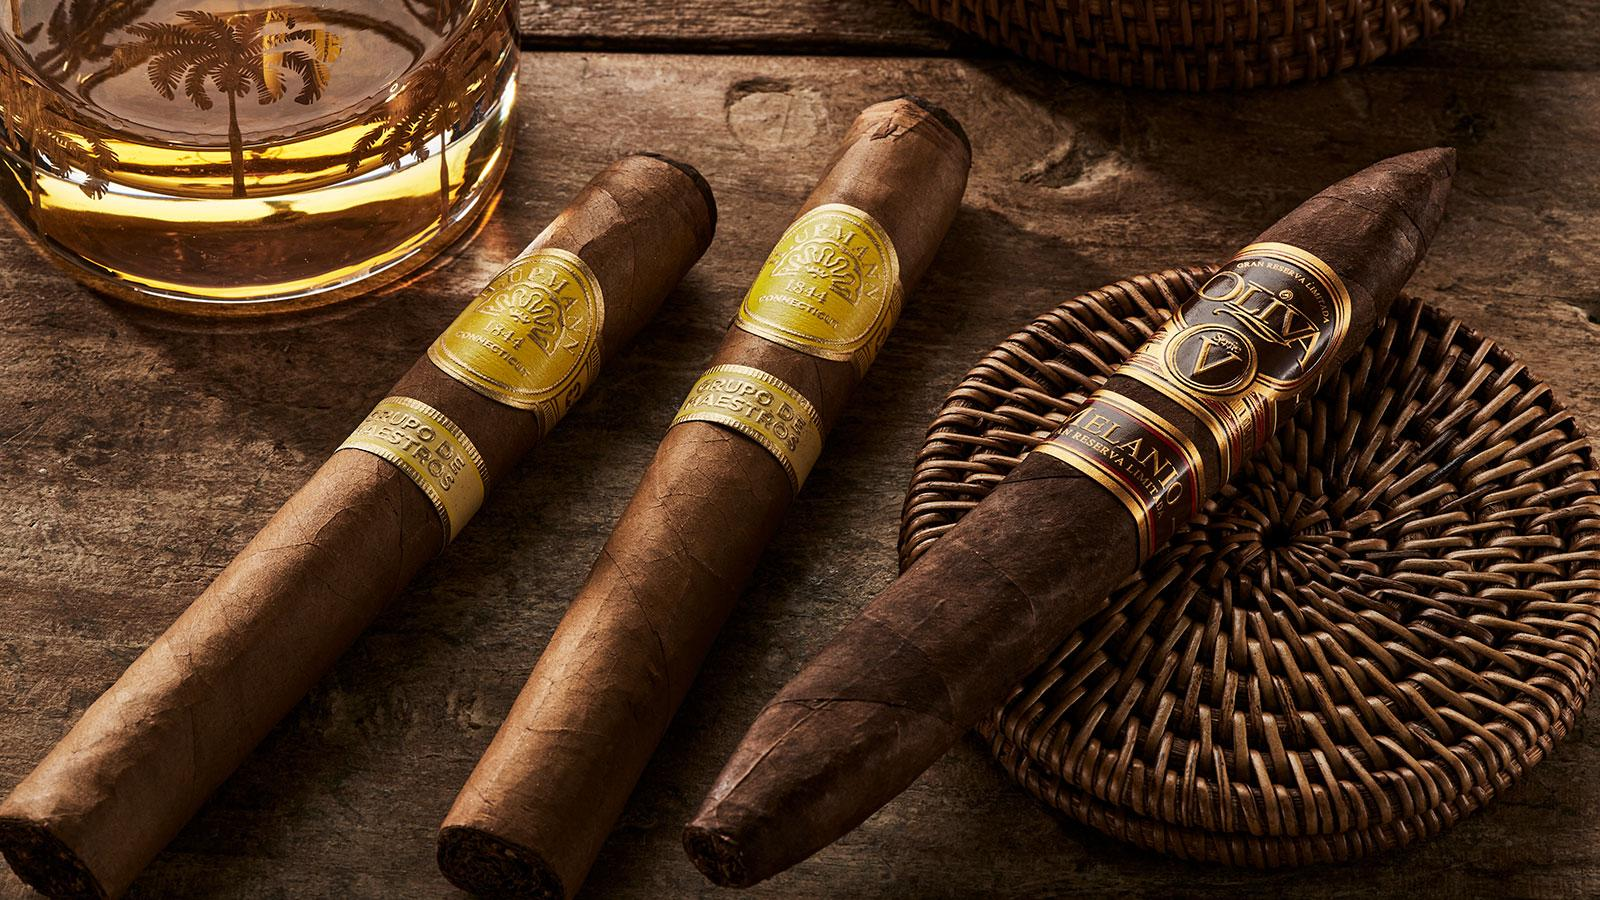 rum and cigars